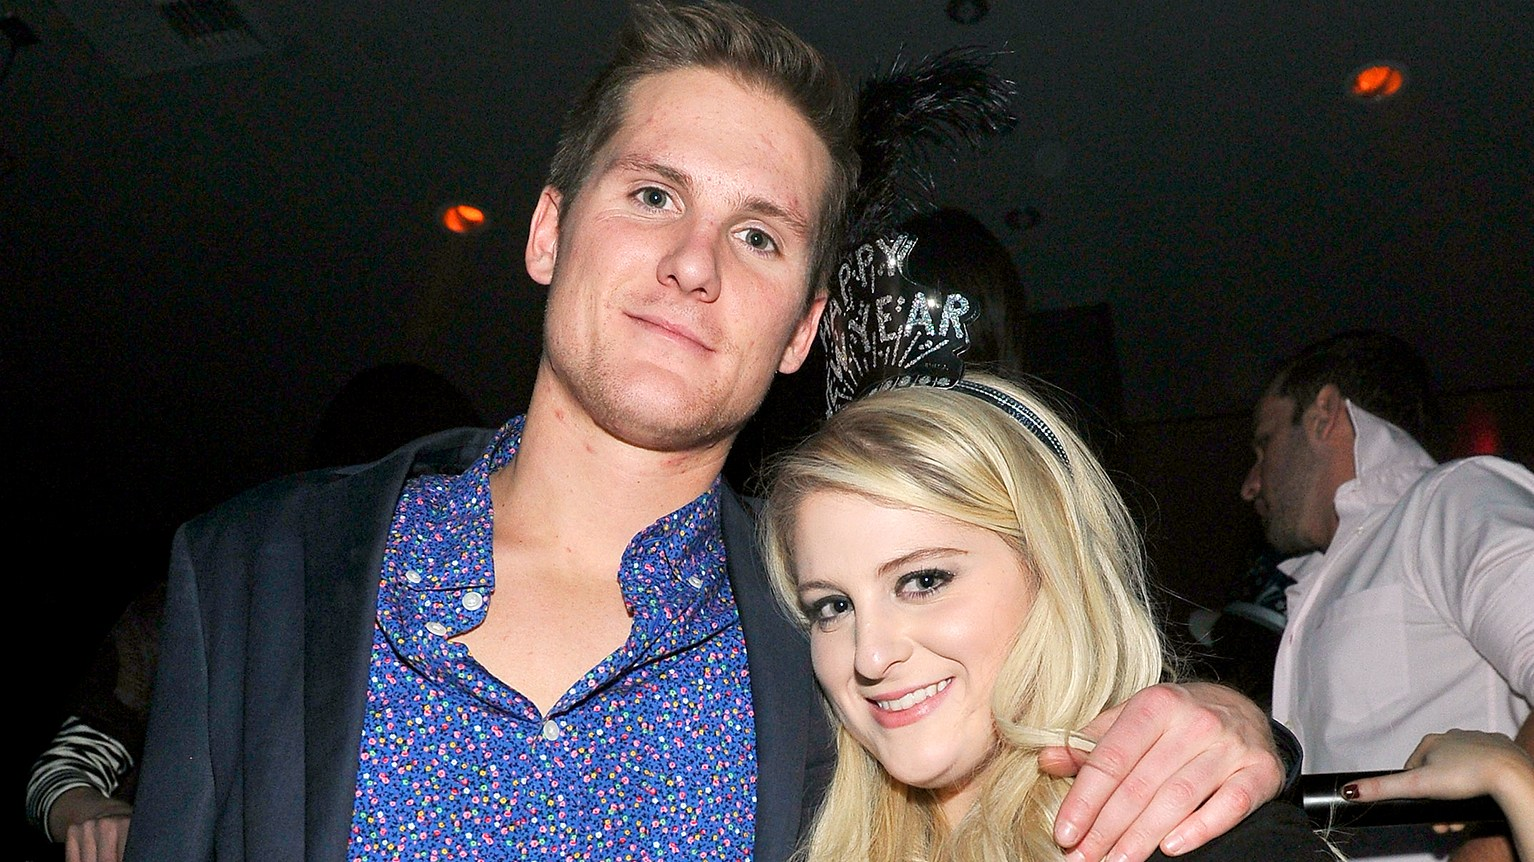 Meghan Trainor and her brother Ryan Trainor